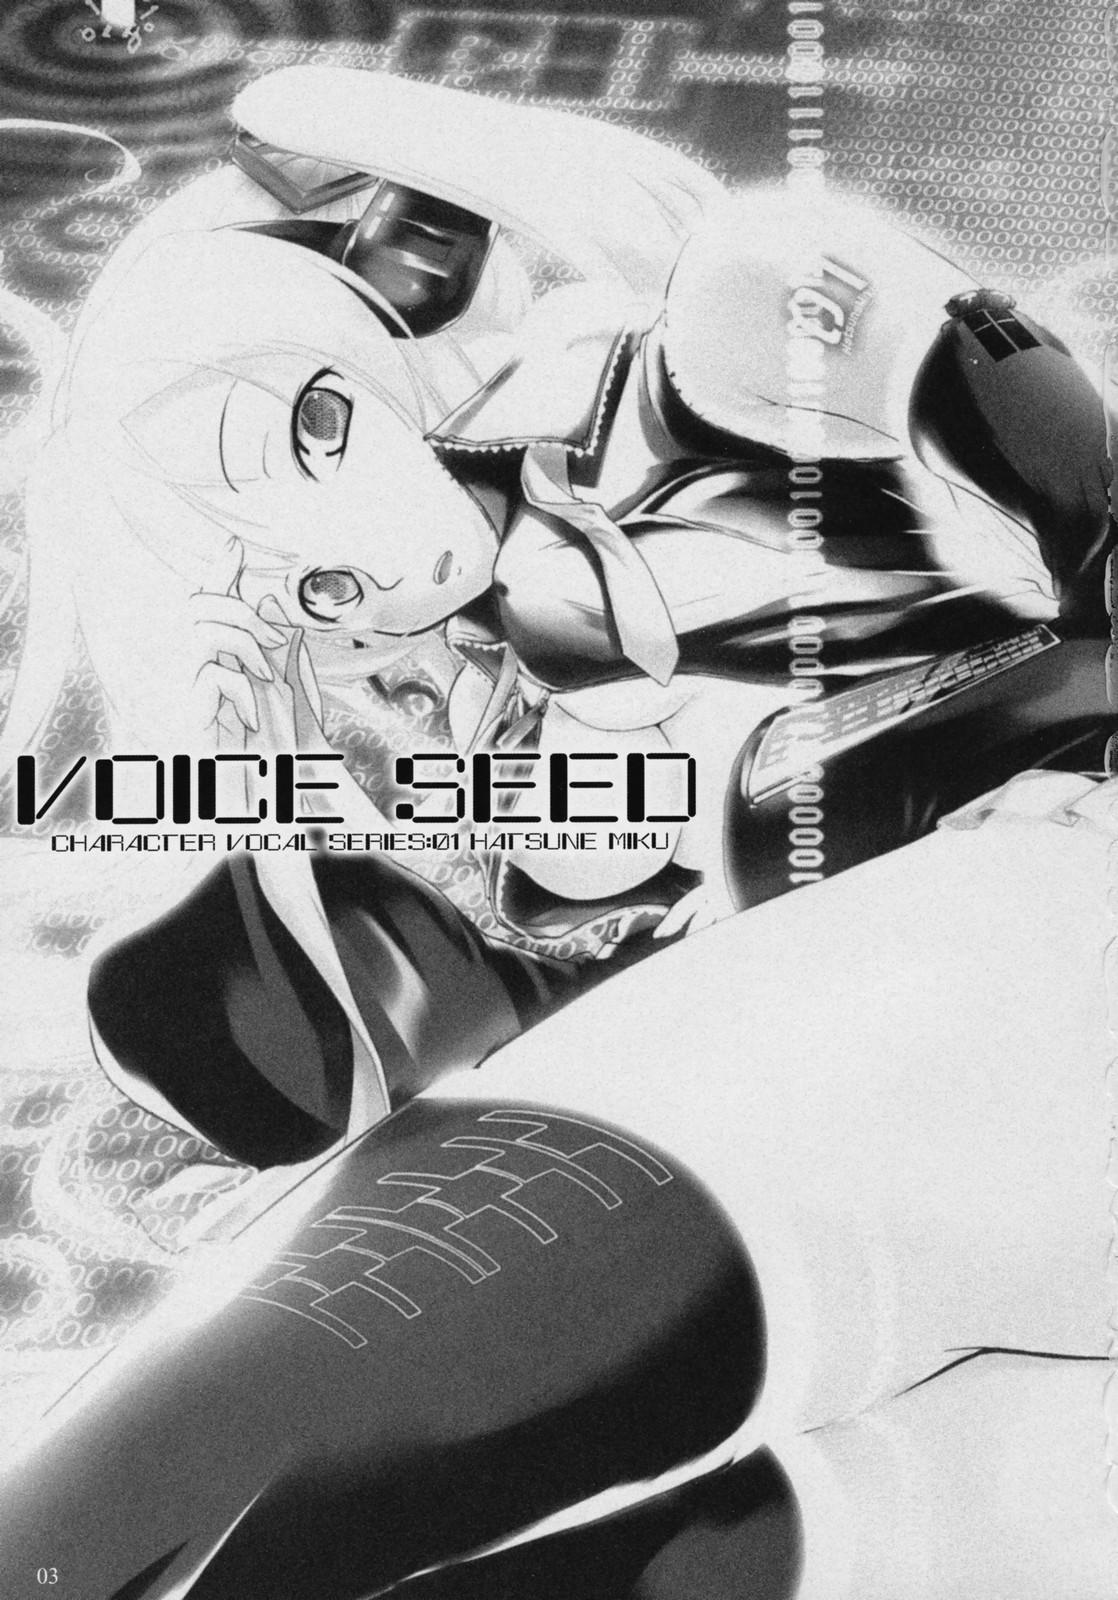 Voice Seed 1